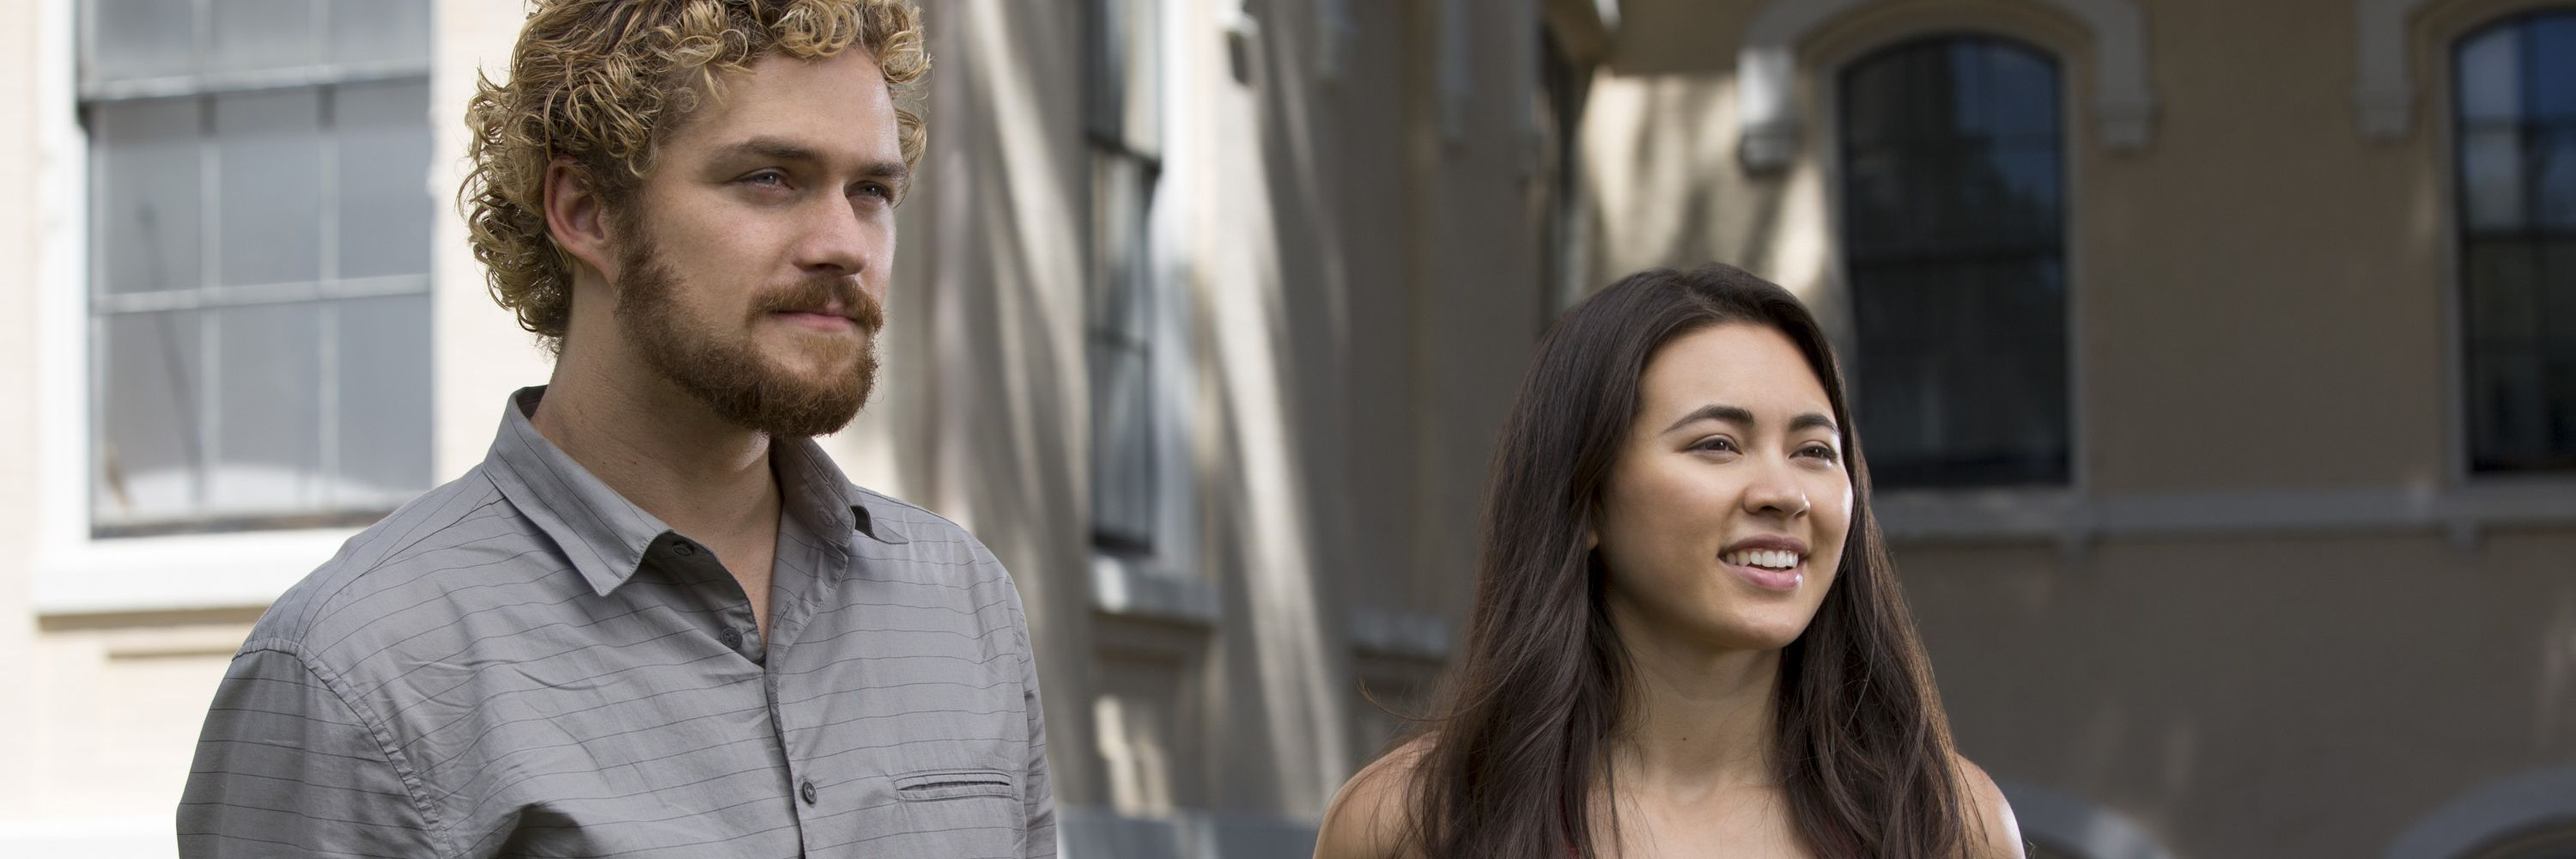 Pity, that what happened to iron fist